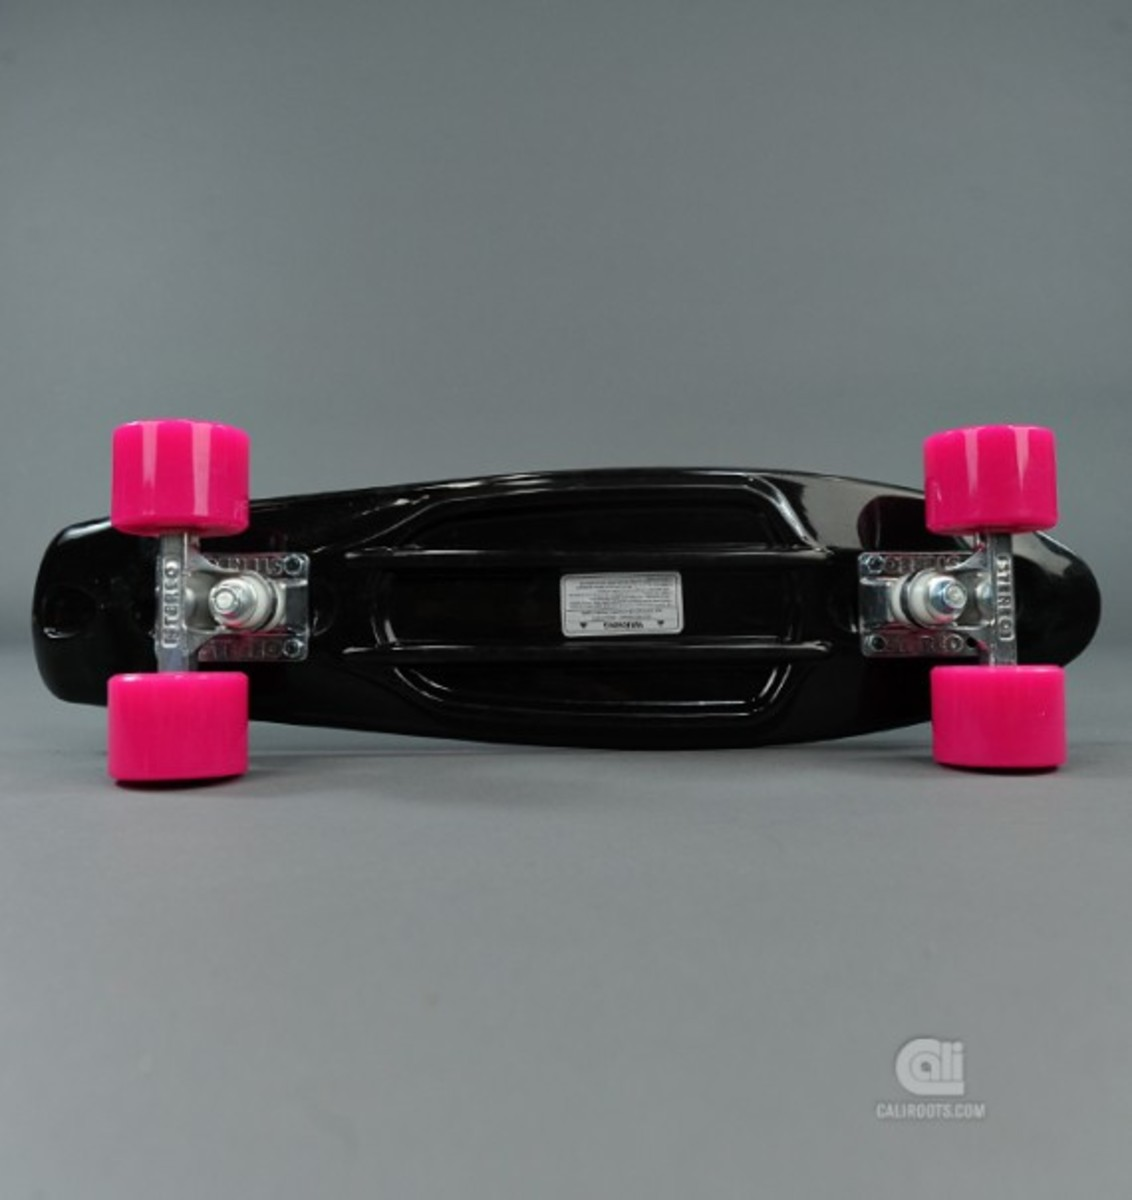 stereo-keep-a-breast-vinyl-cruiser-09